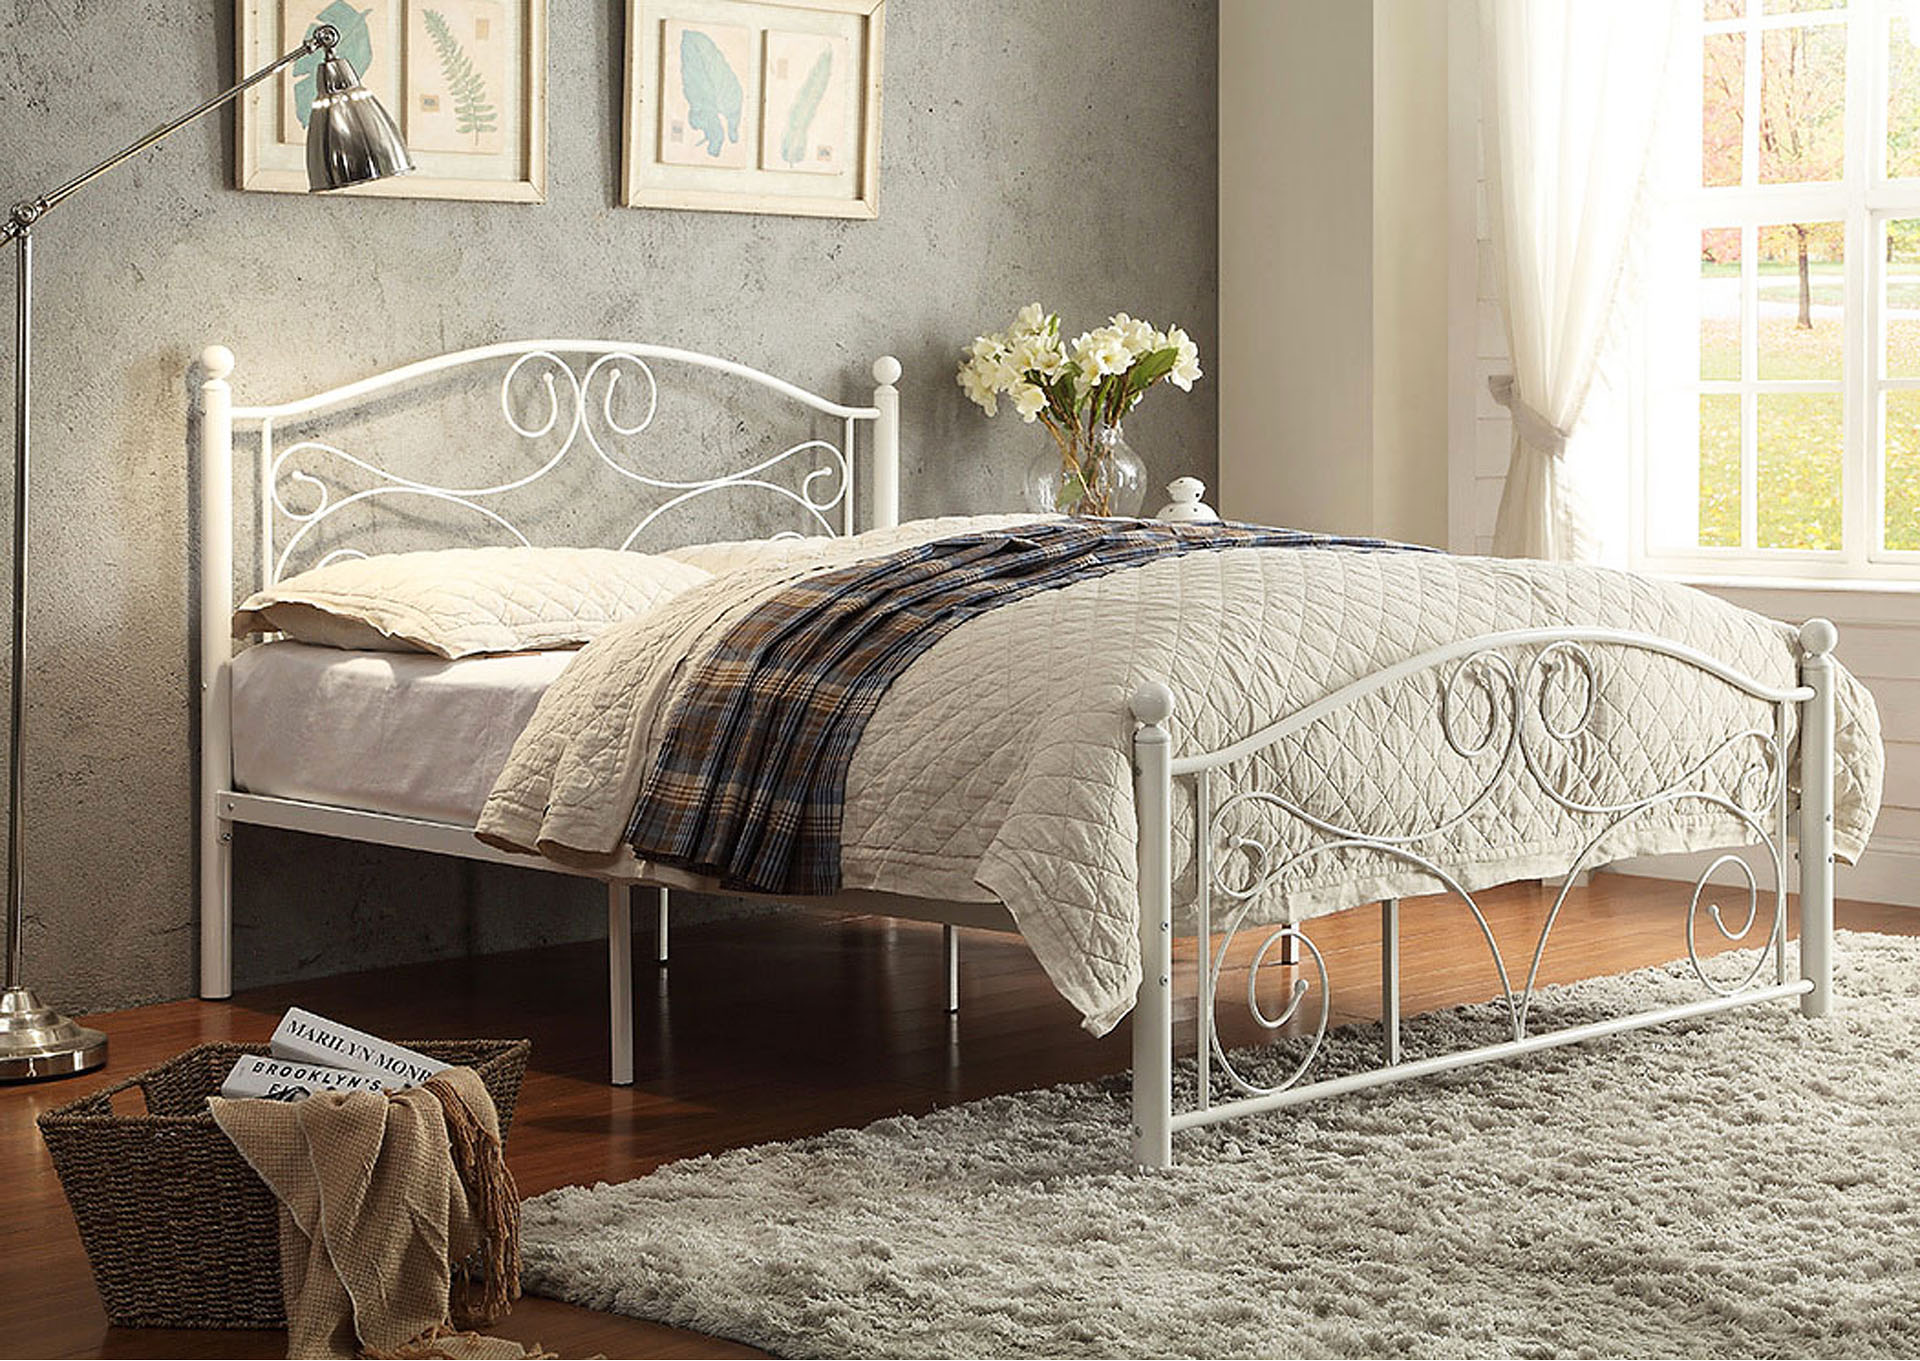 Pallina White Full Poster Bed,Homelegance